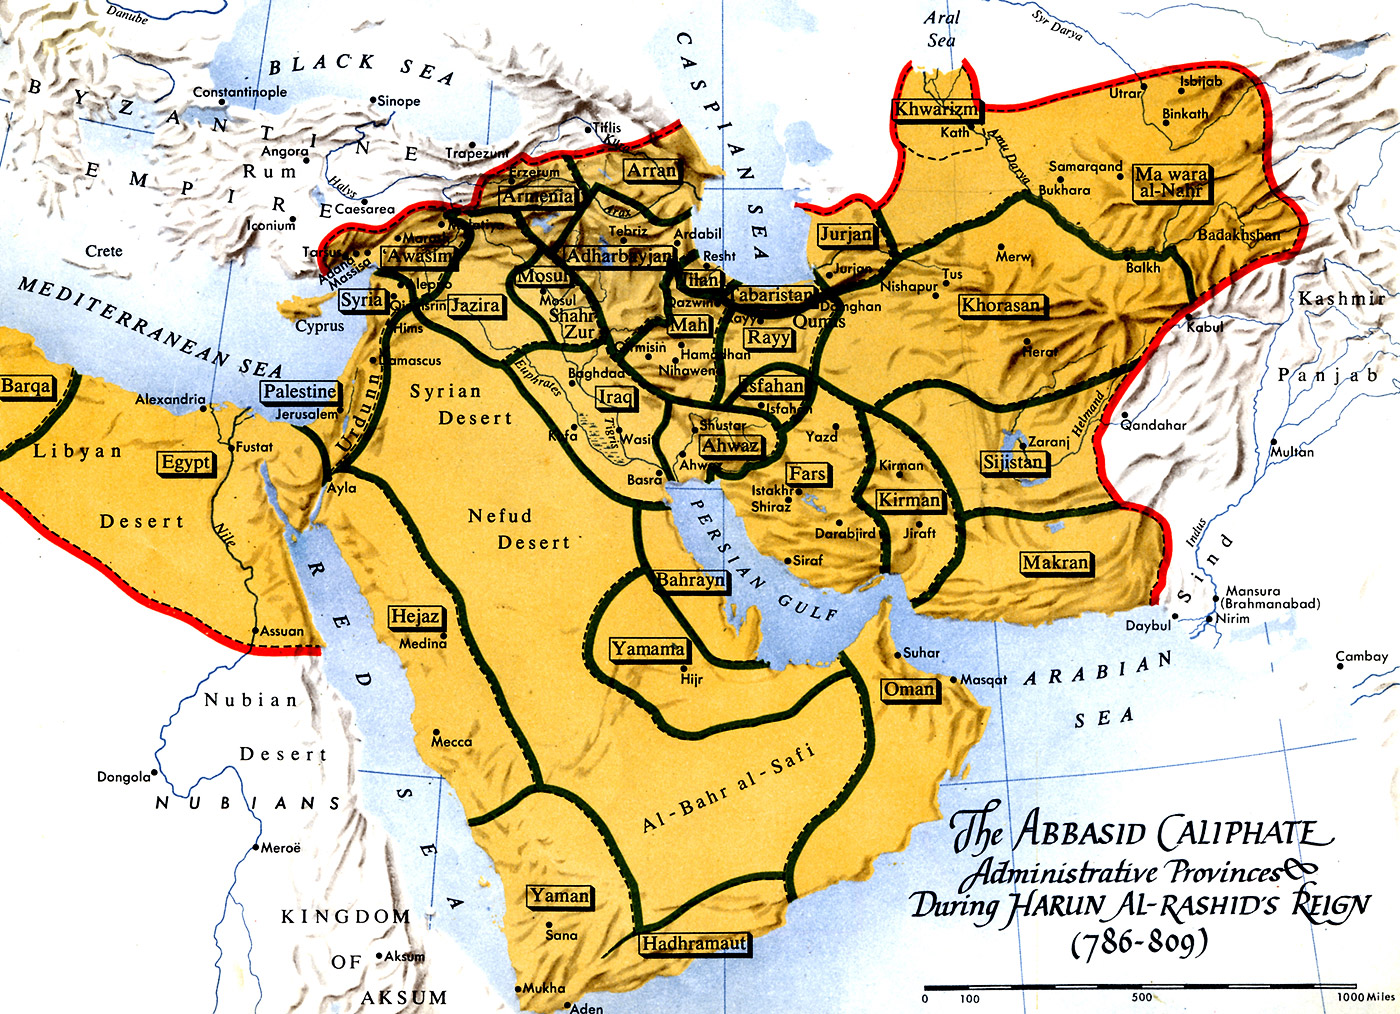 abbasid and byzantine empire fall and Caliphs took advantage of weakened empires (persia, byzantine)  evangelize  within the empire  abbasid decline began around 900 ce, caused by.